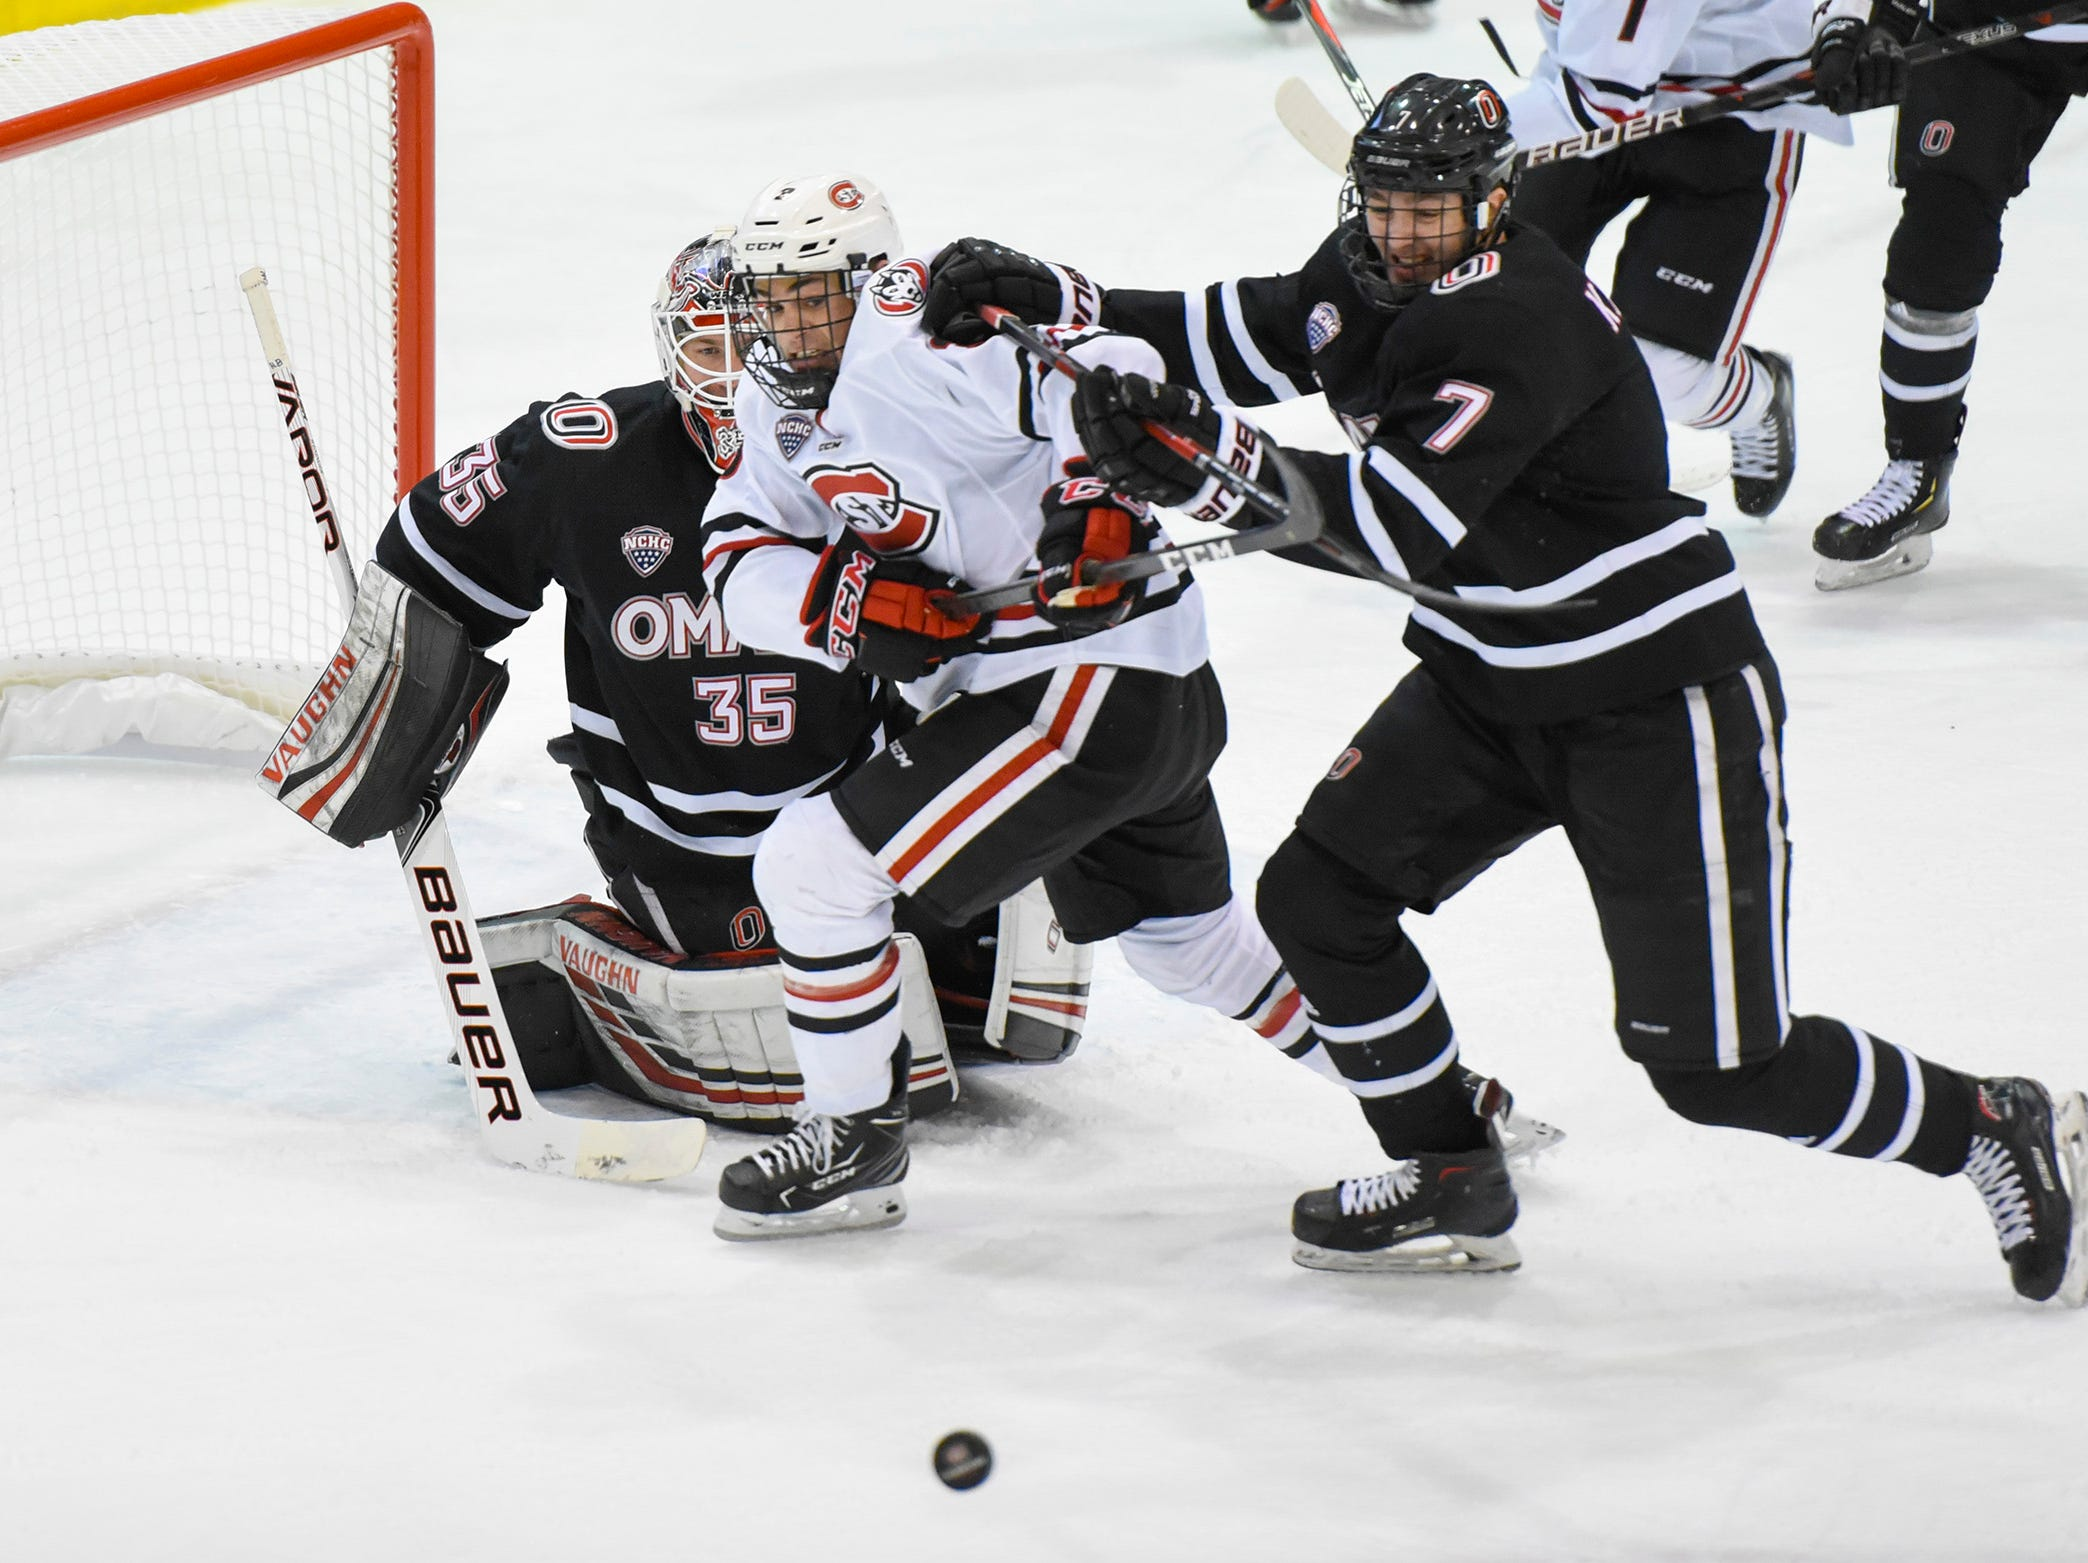 St. Cloud State's Jack Poehling has a shot on goal blocked against Nebraska-Omaha during the first period Friday, Dec. 7, at the Herb Brooks National Hockey Center.